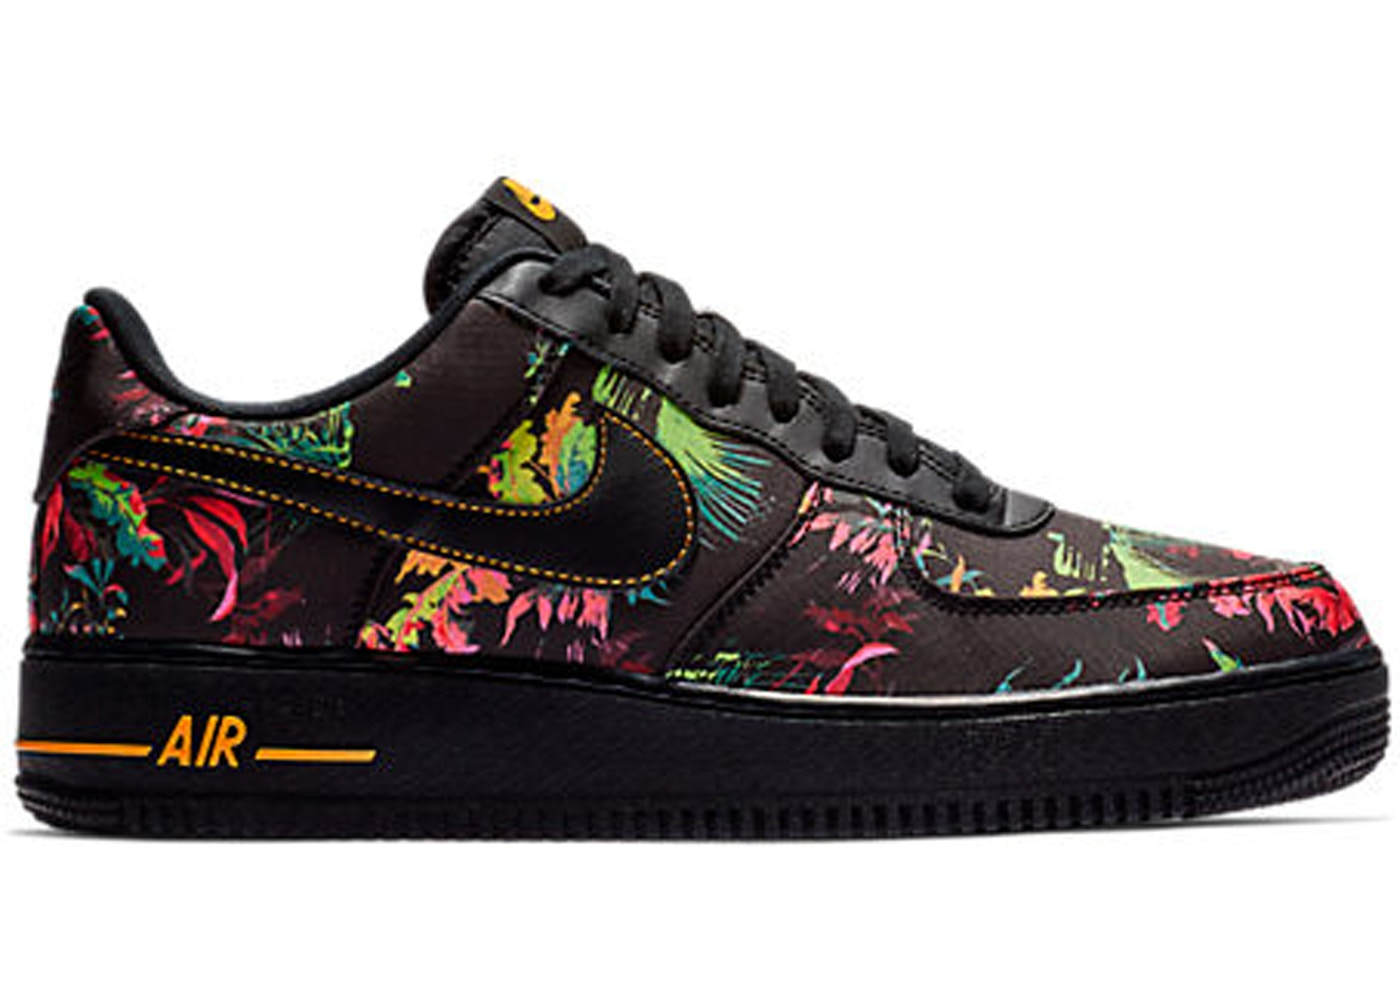 Air Force 1 Low Floral (2019) - BV6068-001 a7b5a935bb3f